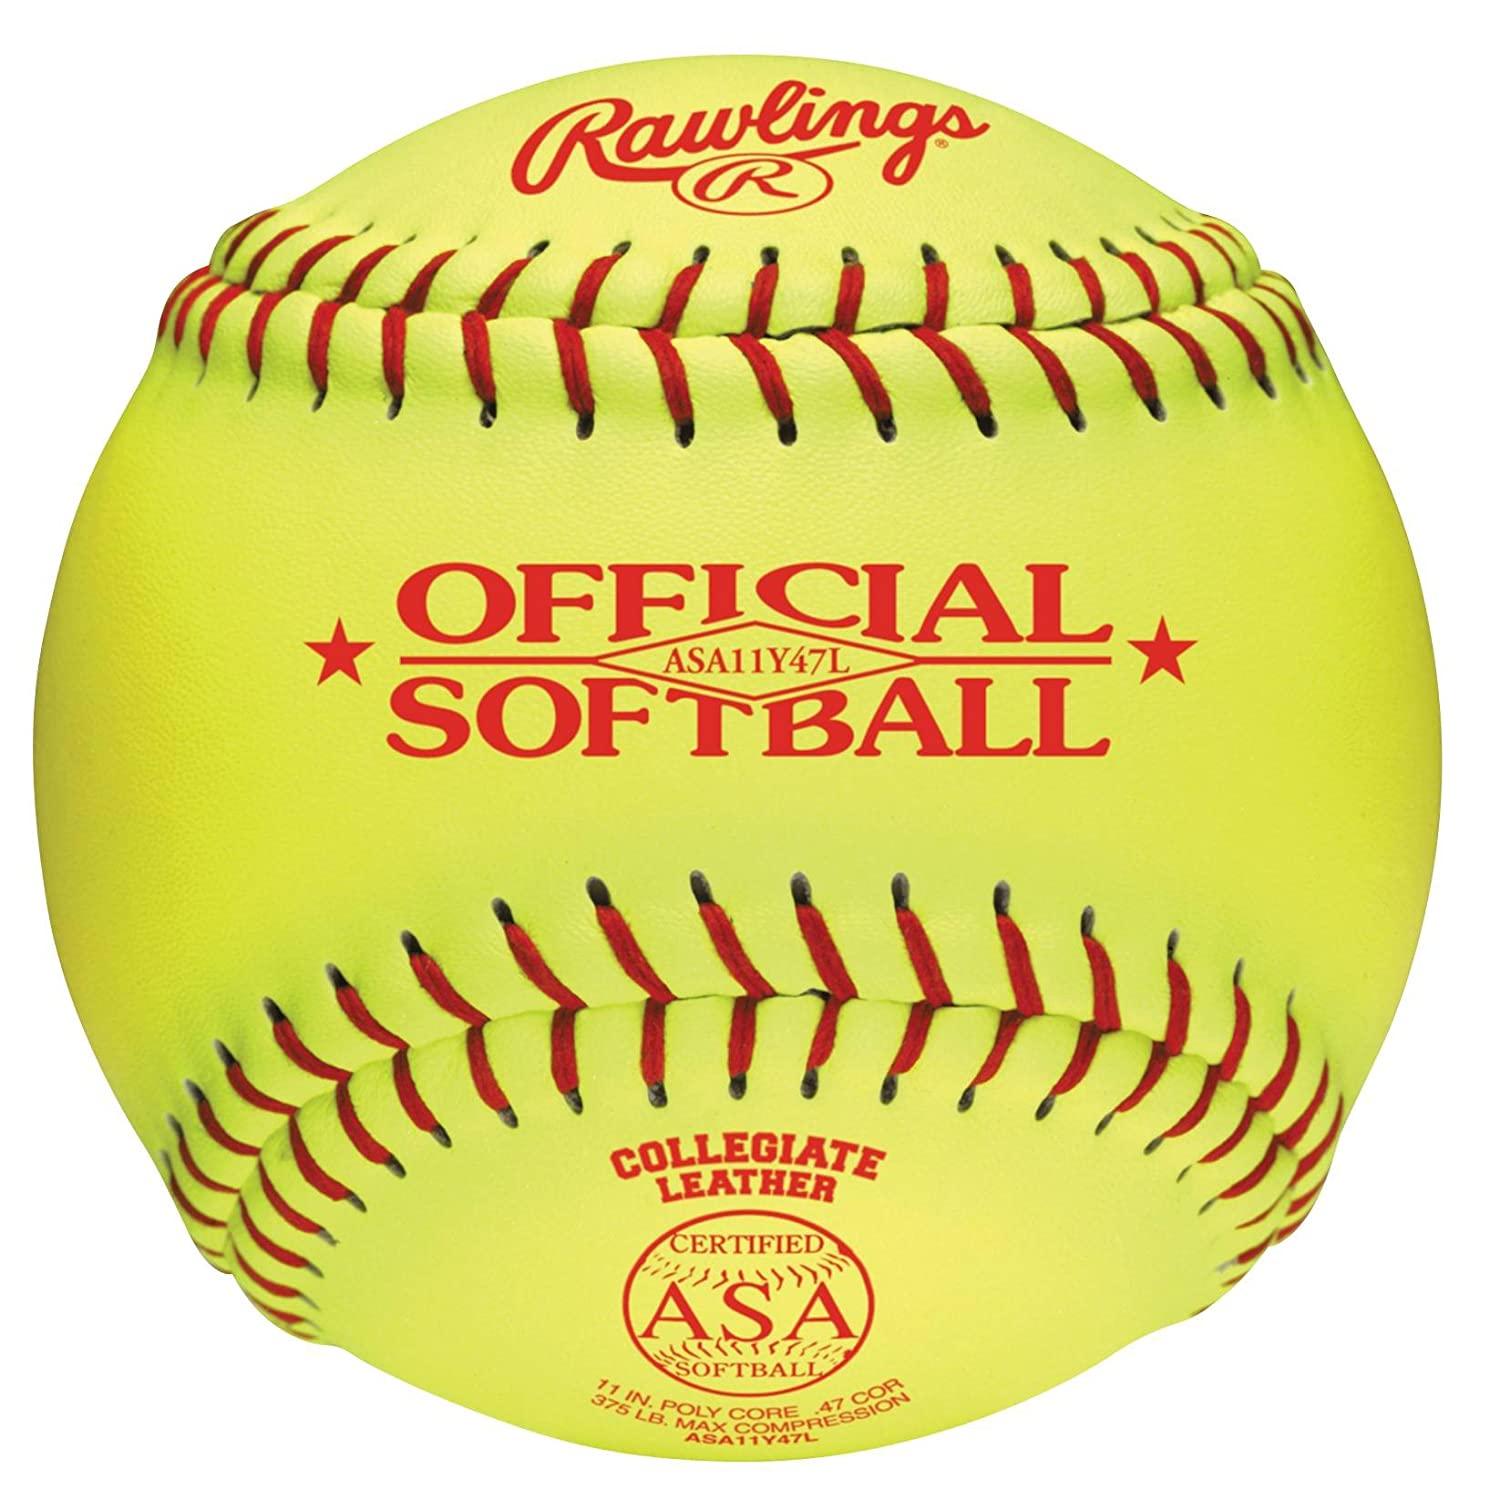 RawlingsレザーカバーASA Fastpitchソフトボールスタンプ(イエロー) 12-Inch B001JHT6PS 12-Inch, 三崎町:30a8e5ce --- sayselfiee.com